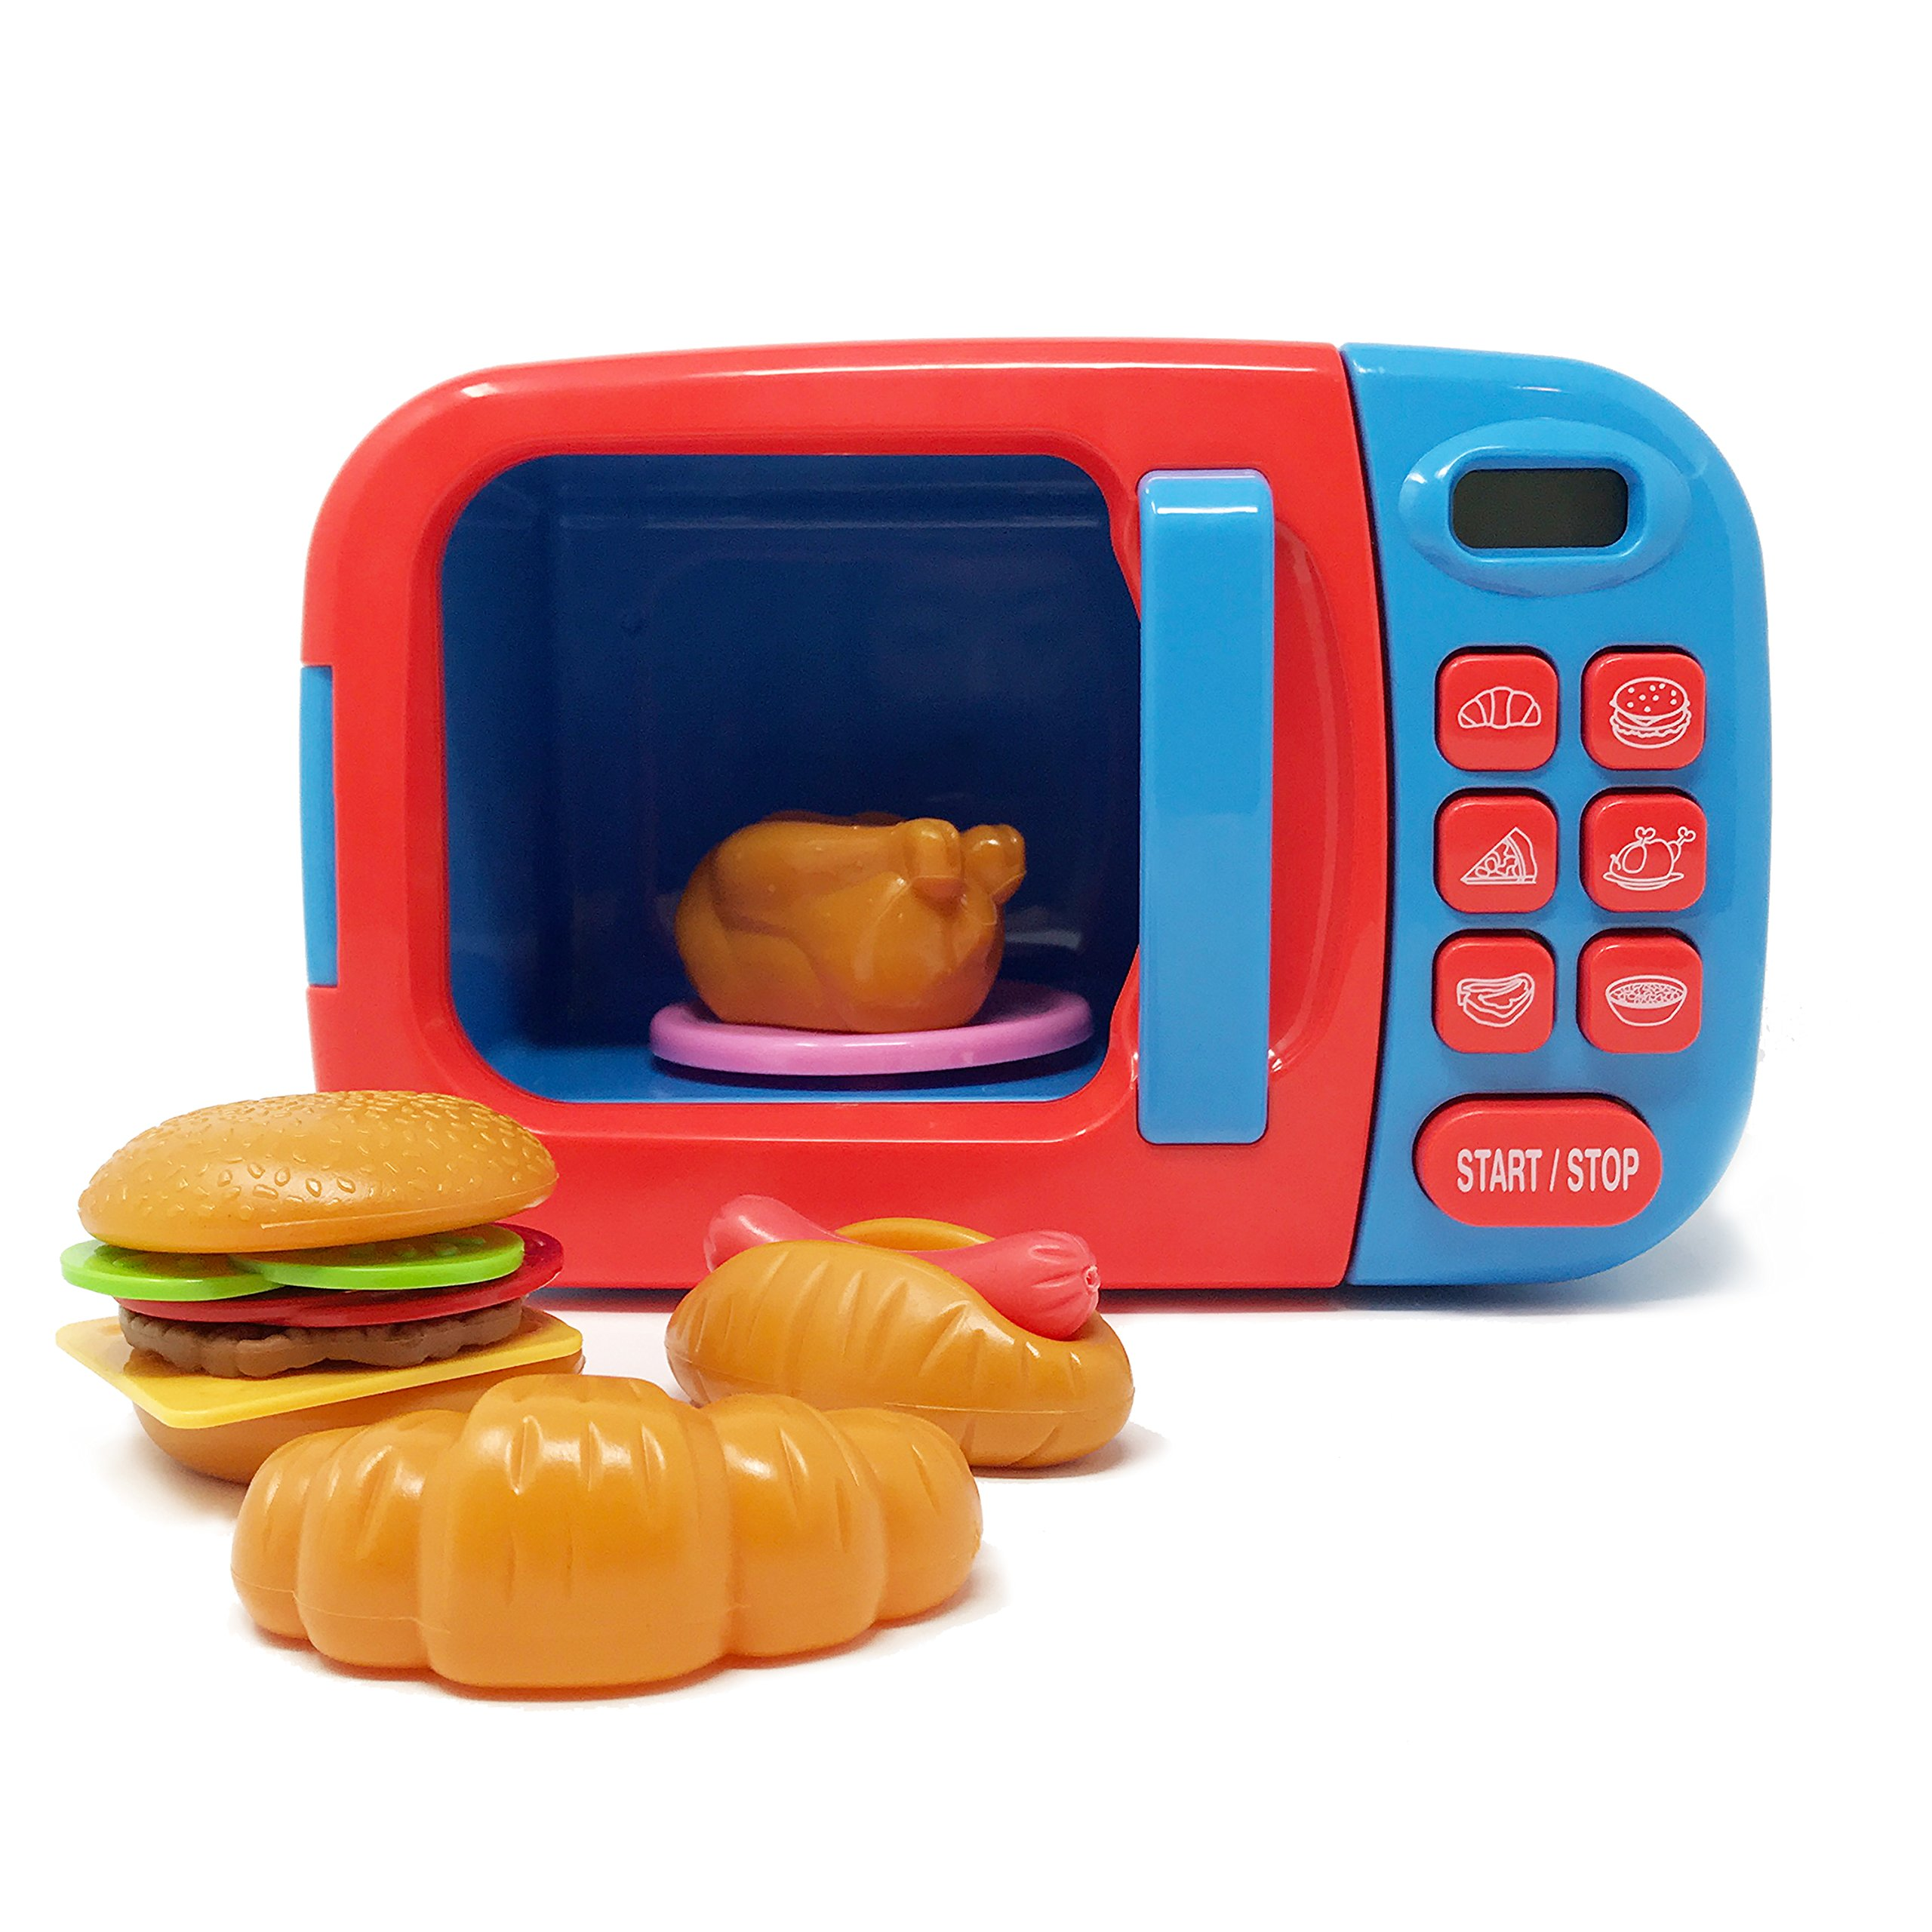 Boley Microwave Kitchen Play Set with Pretend Play Fake Food - Great for Toddlers Ages 3 and Older - Educational Battery Powered Playset with Lights and Sounds - Blue by Boley